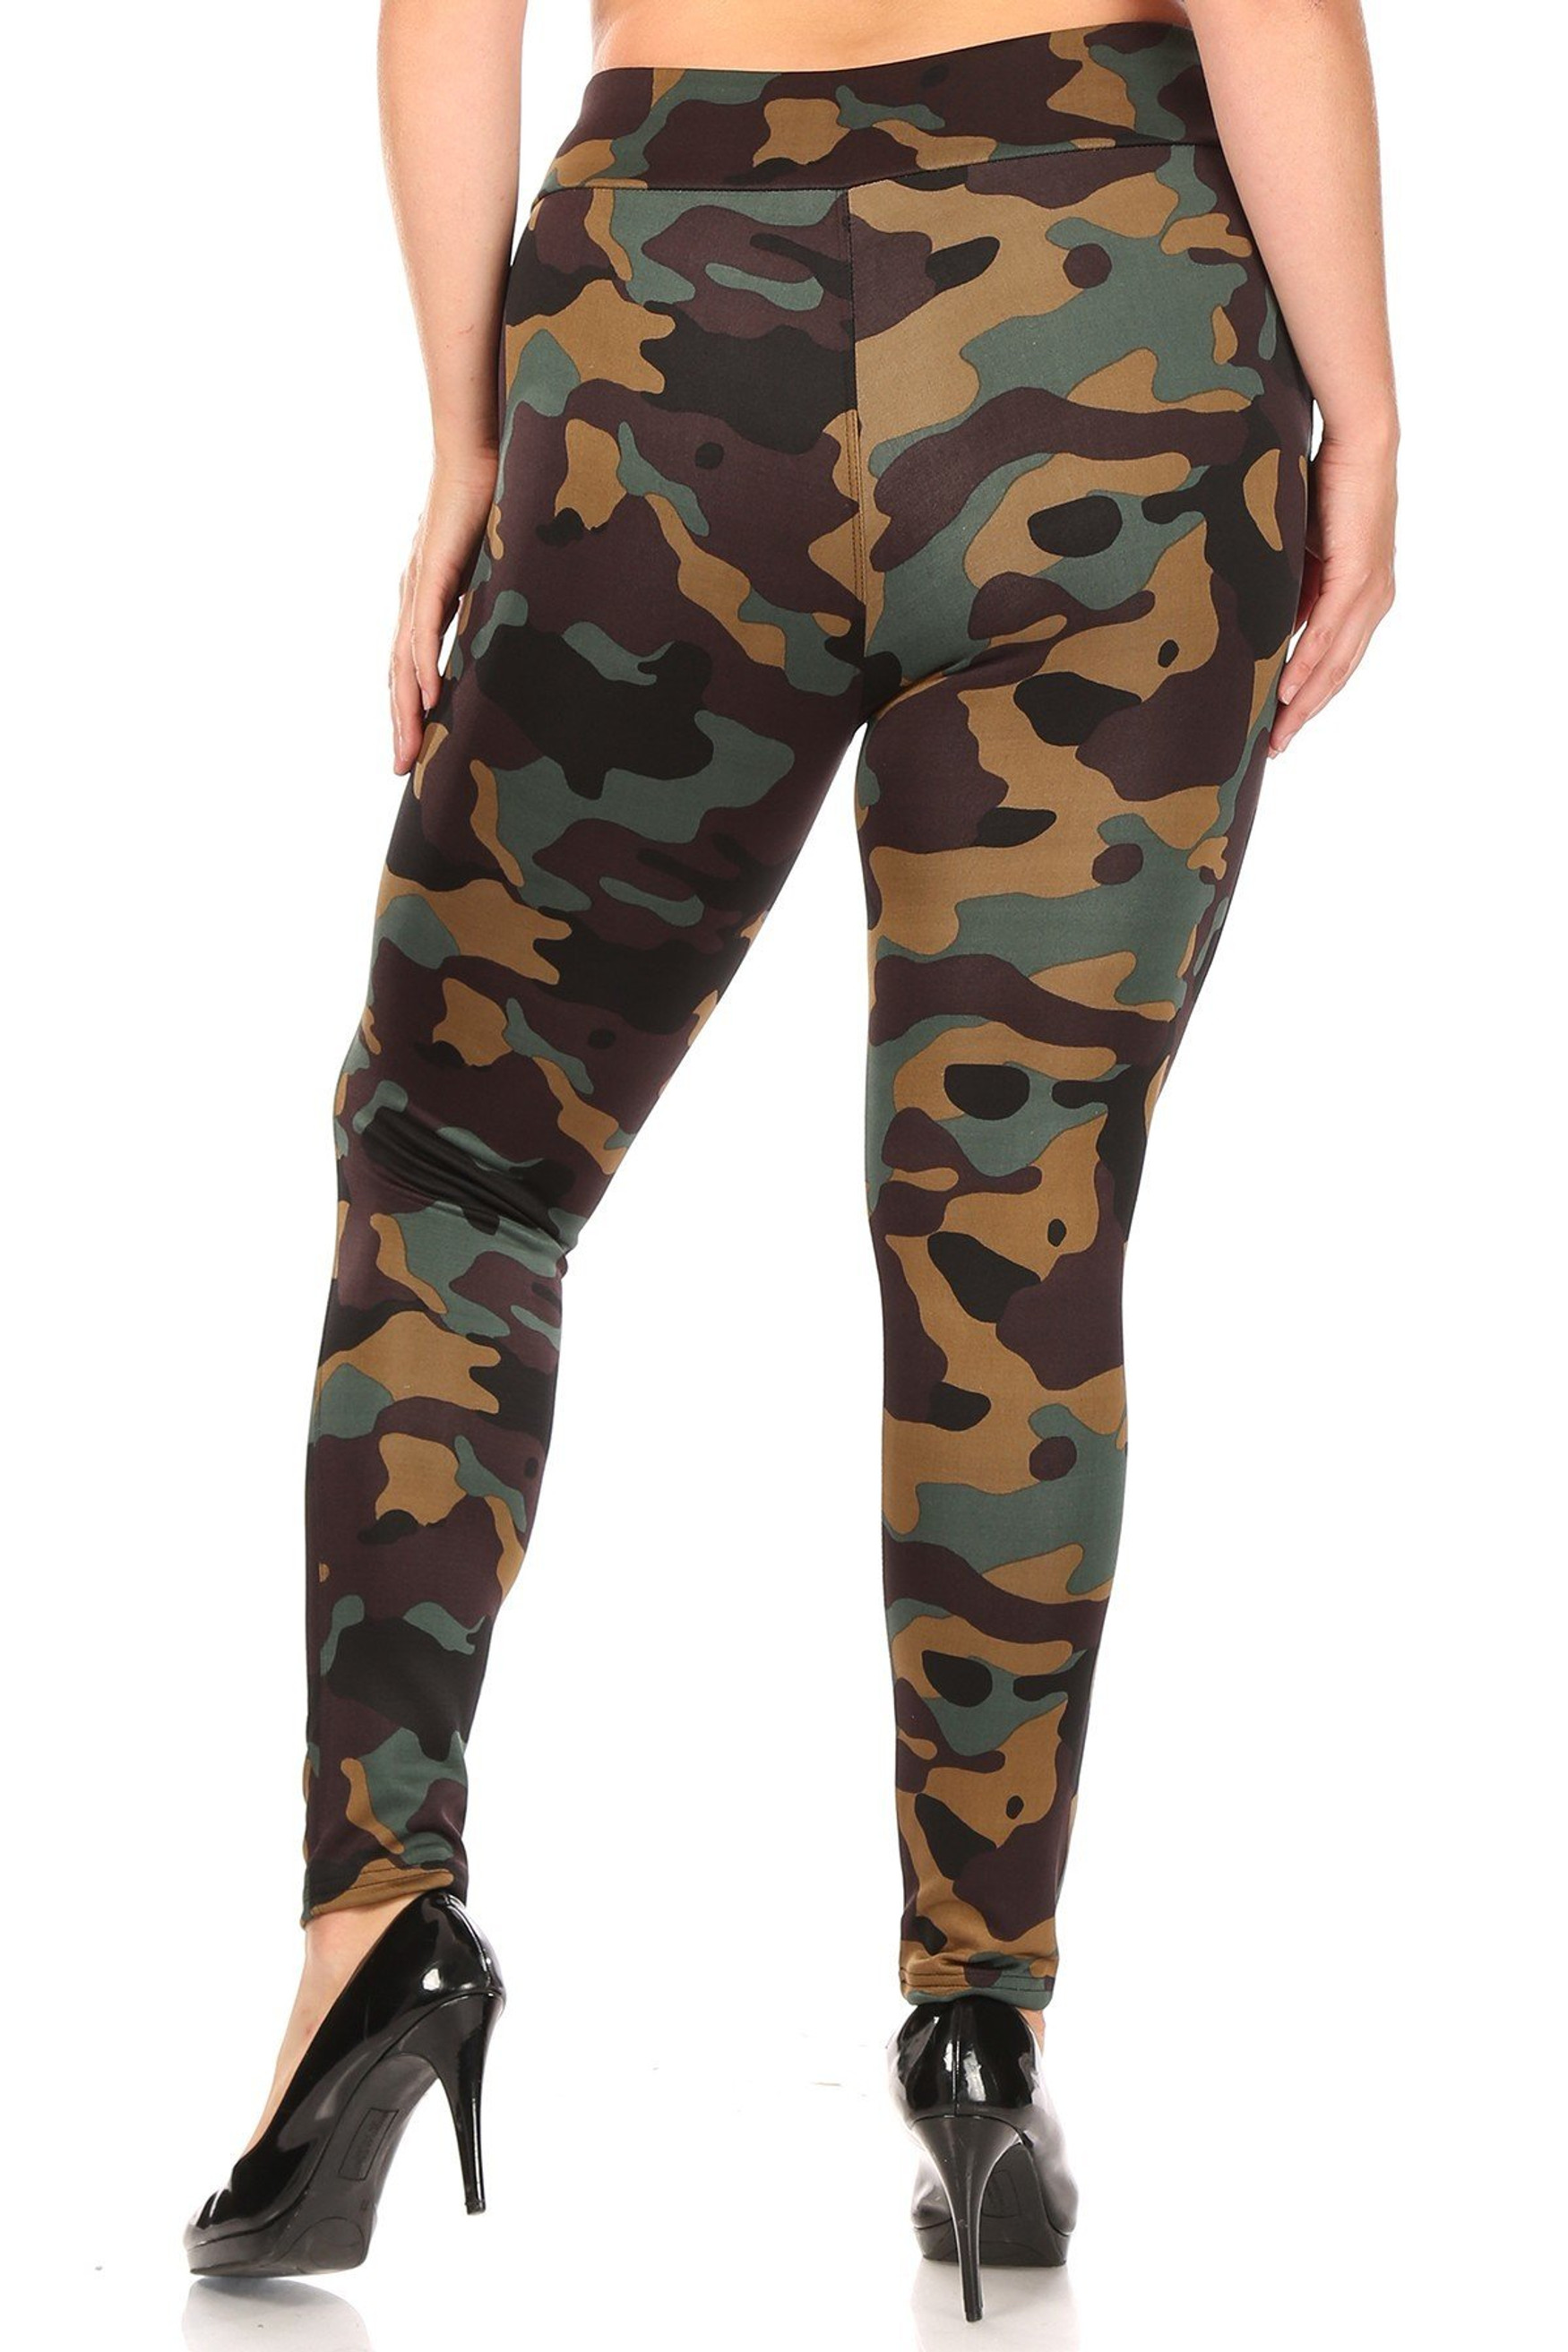 Brown Camouflage High Waisted Plus Size Treggings with Zipper Accent Pockets